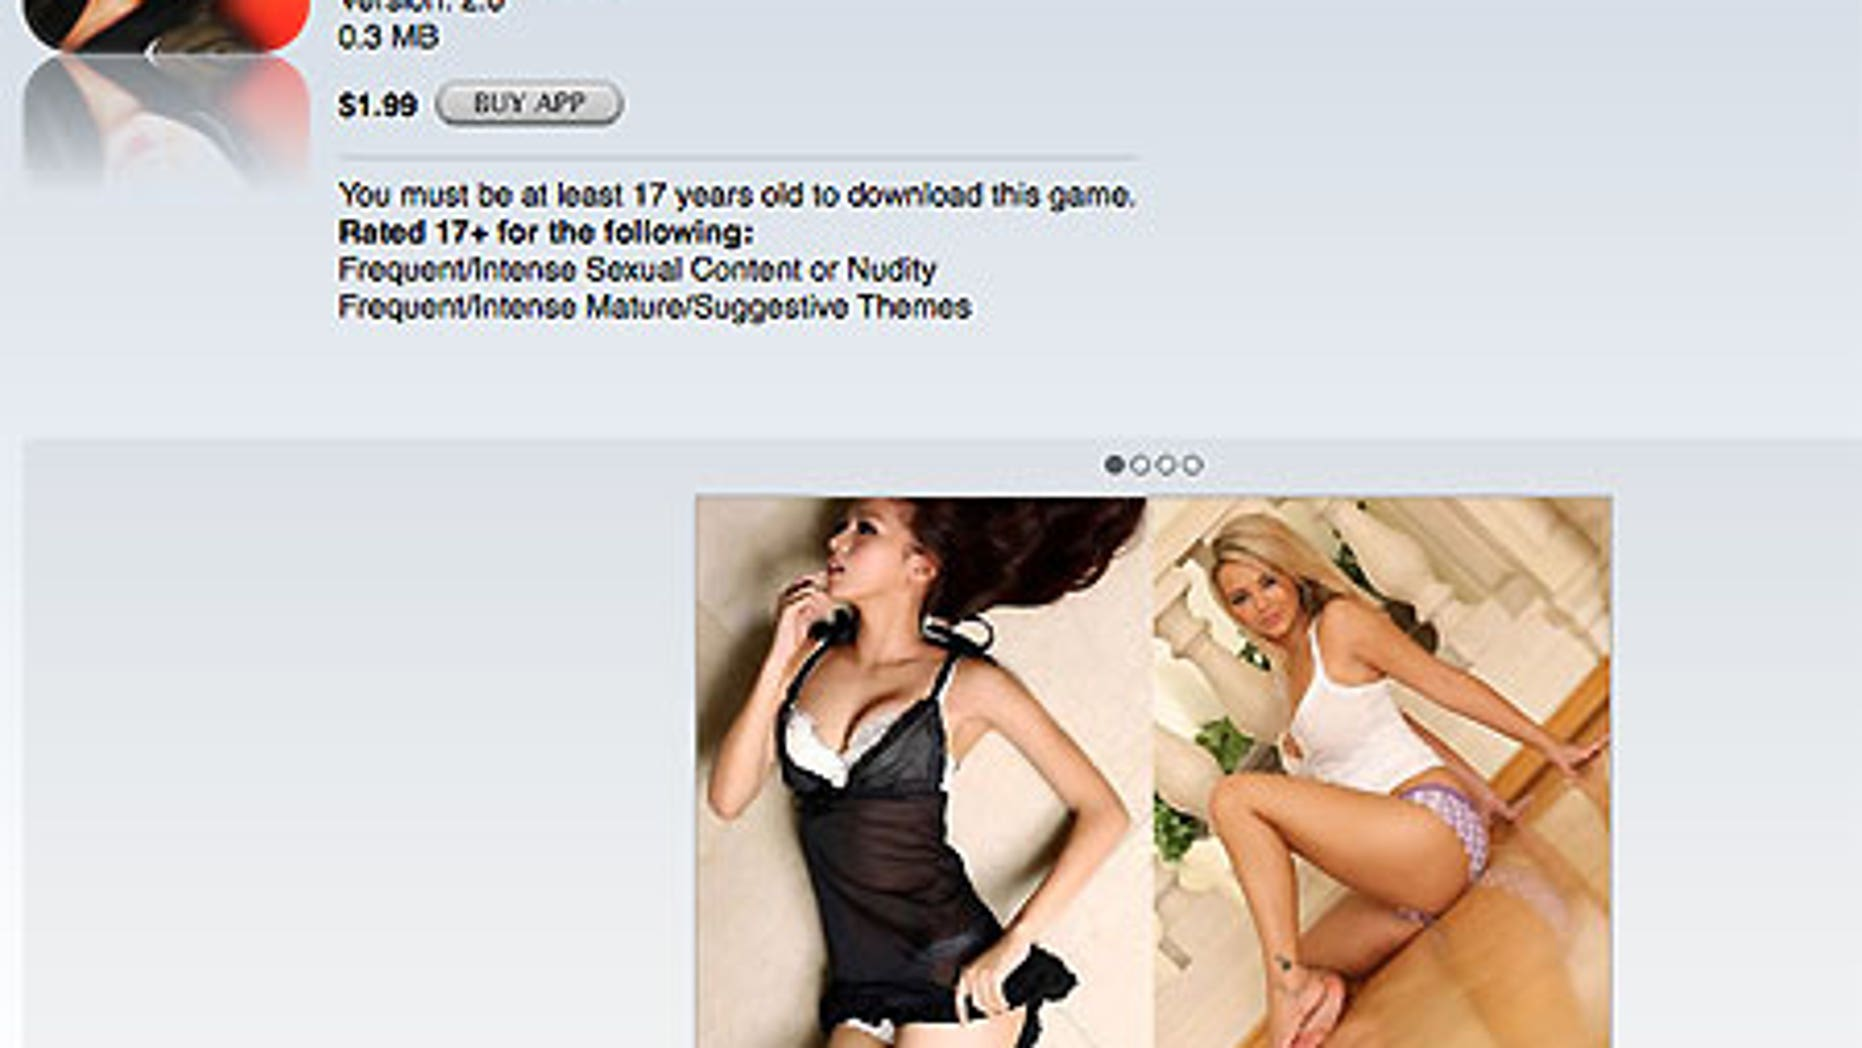 A screen grab of the iTunes App Store splash page for 'Hottest Girls.'